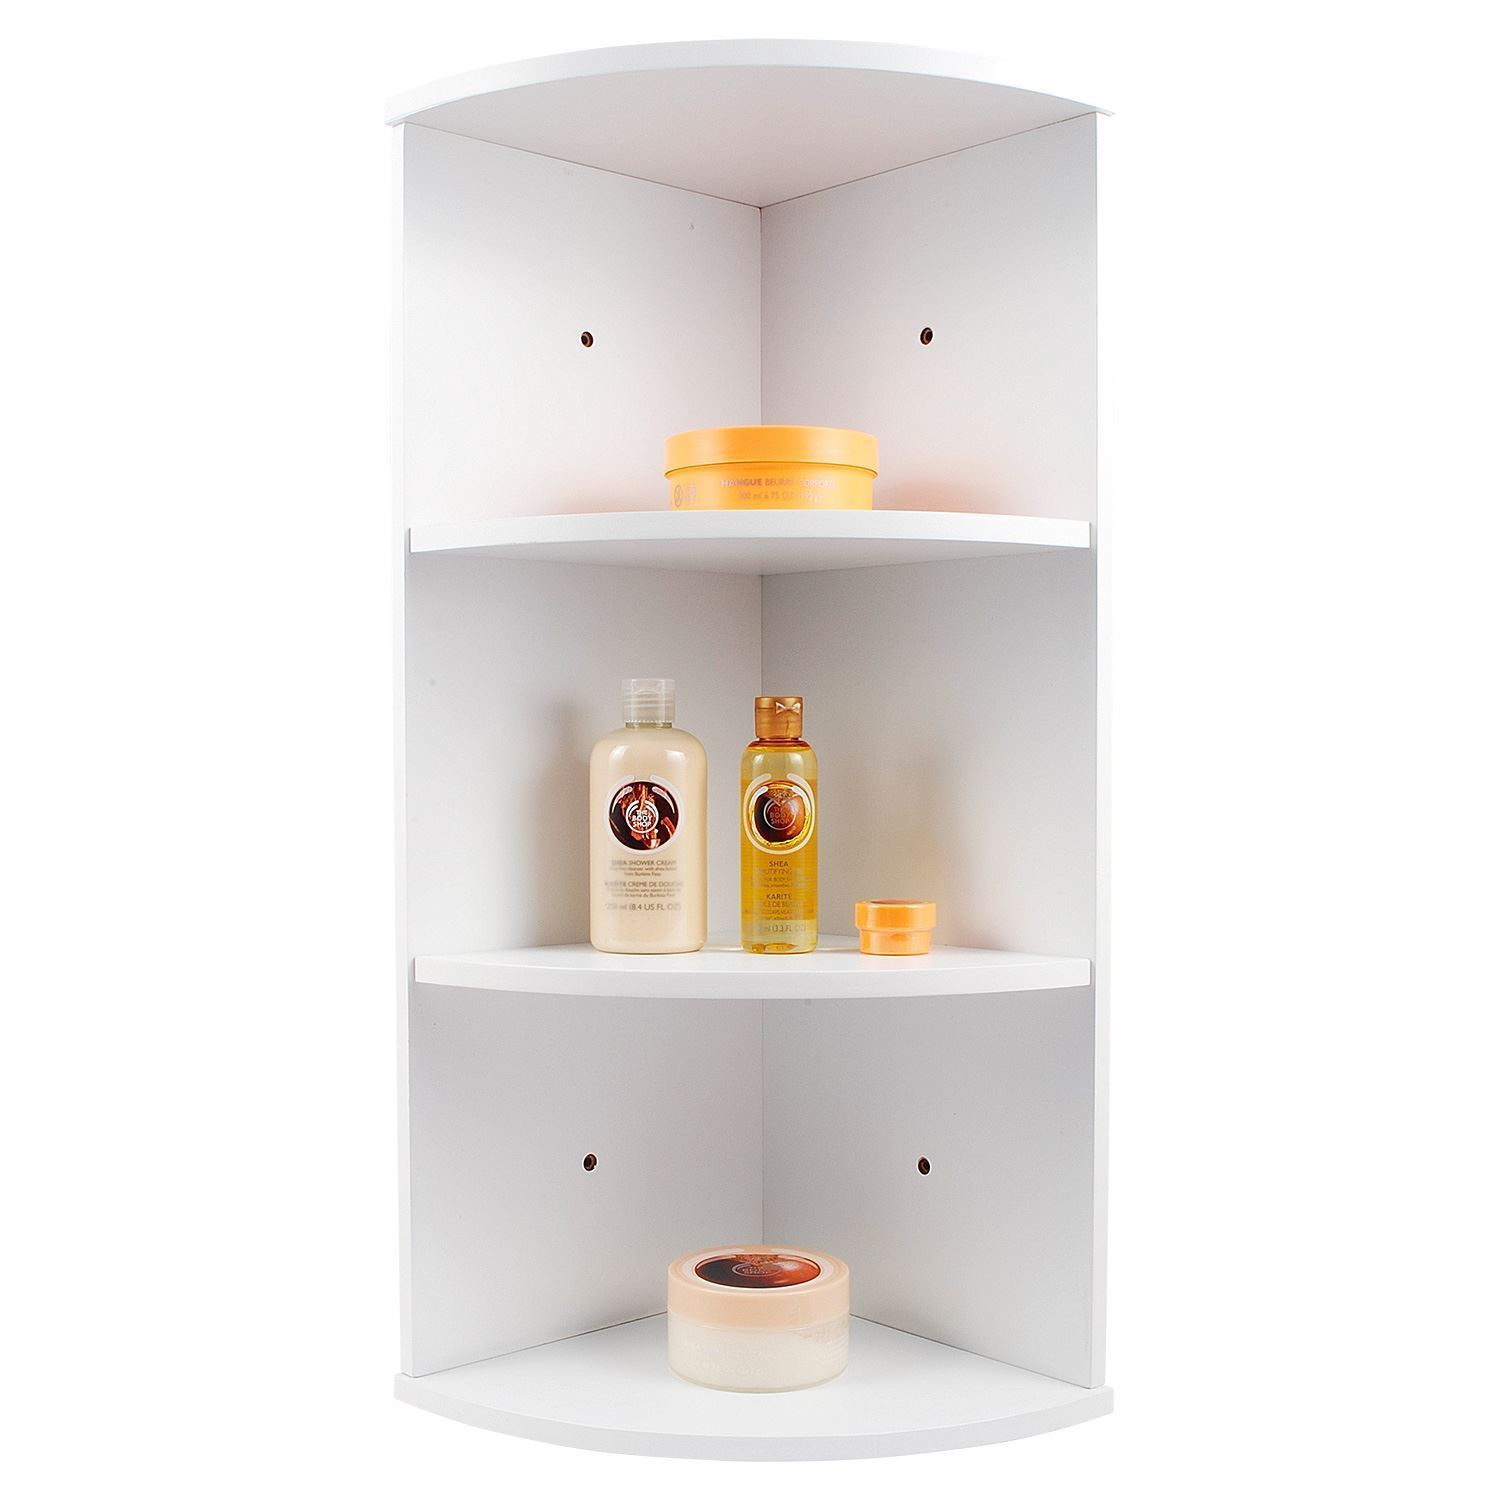 Whiite Wooden 3 Tier Corner Wall Mounted Bathroom Storage